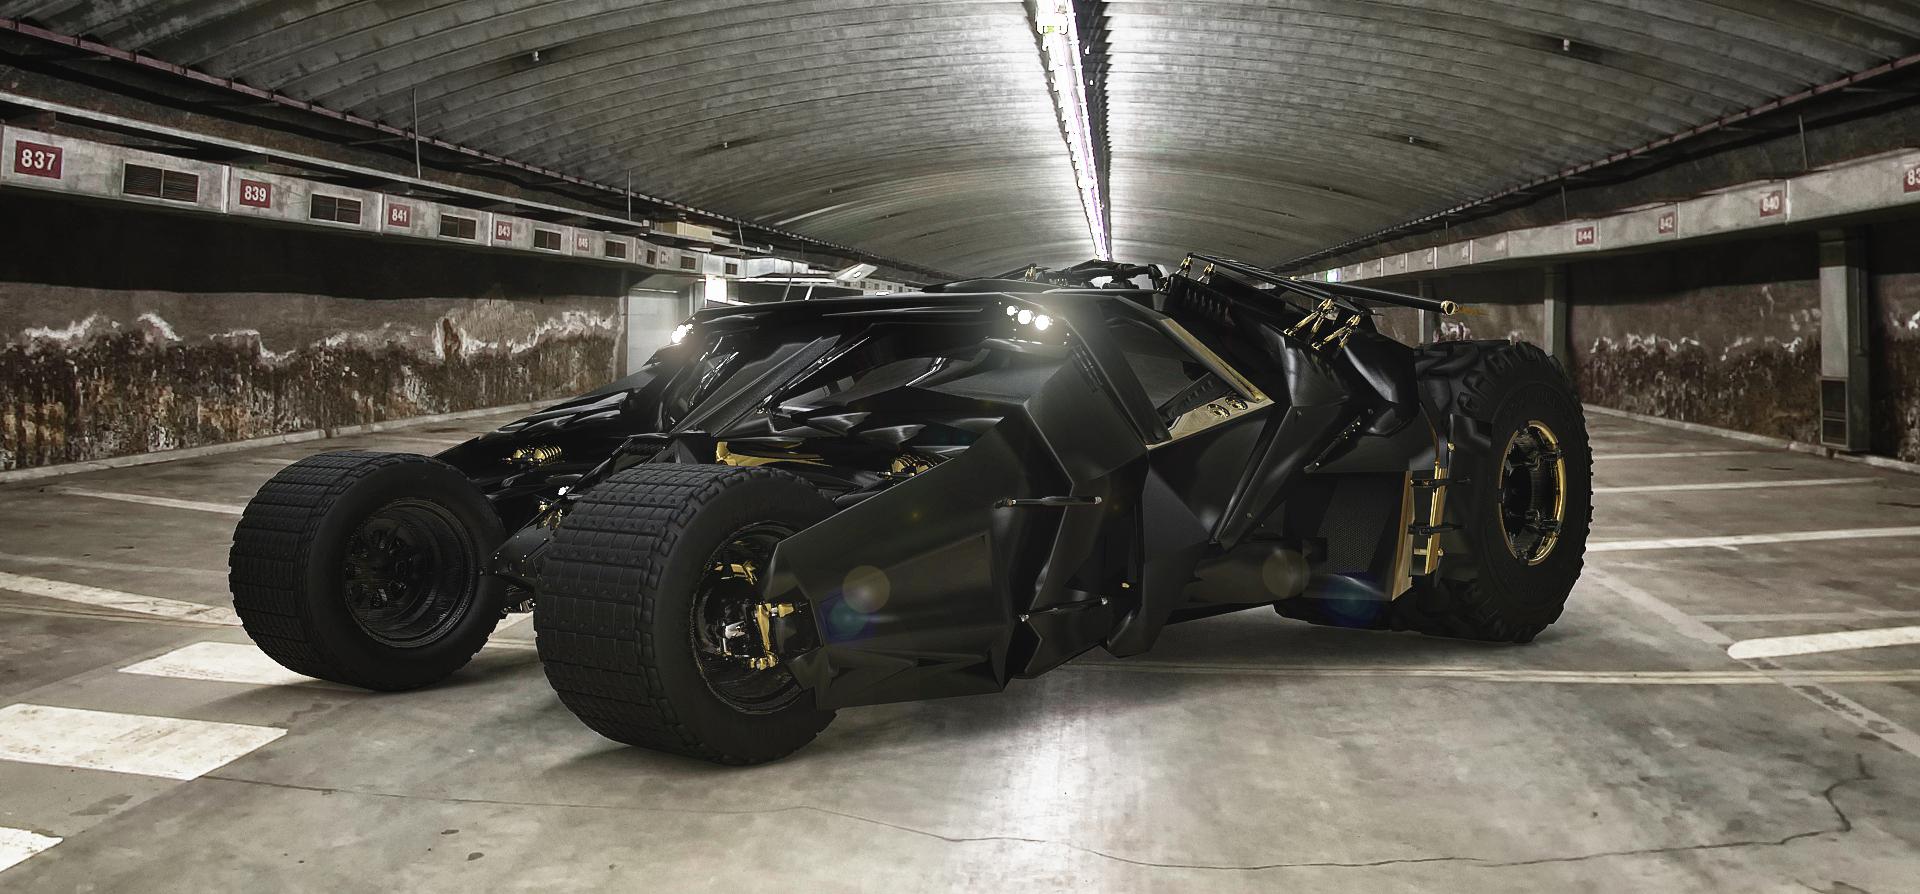 New Batmobile 'The Tumbler' by TheImNobody